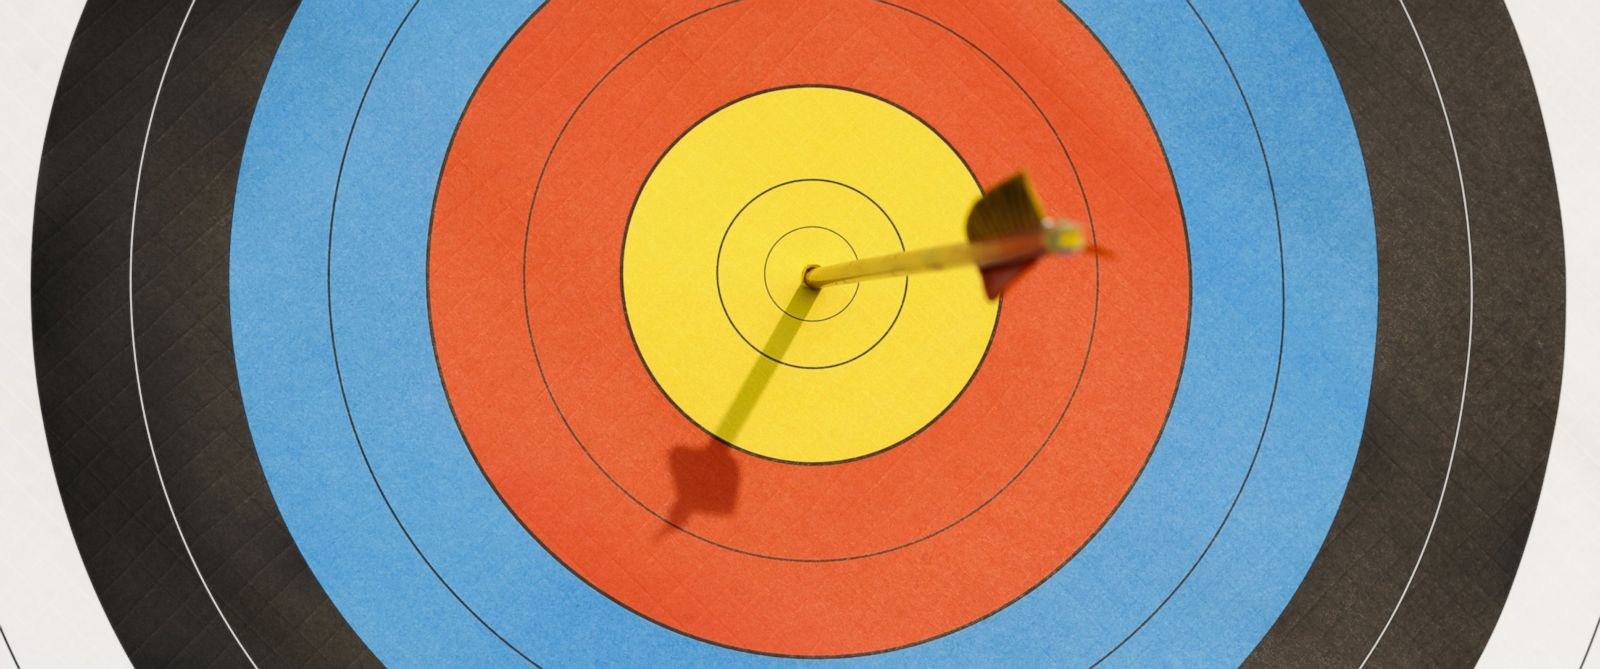 PHOTO: In this stock image, a bullseye is pictured.